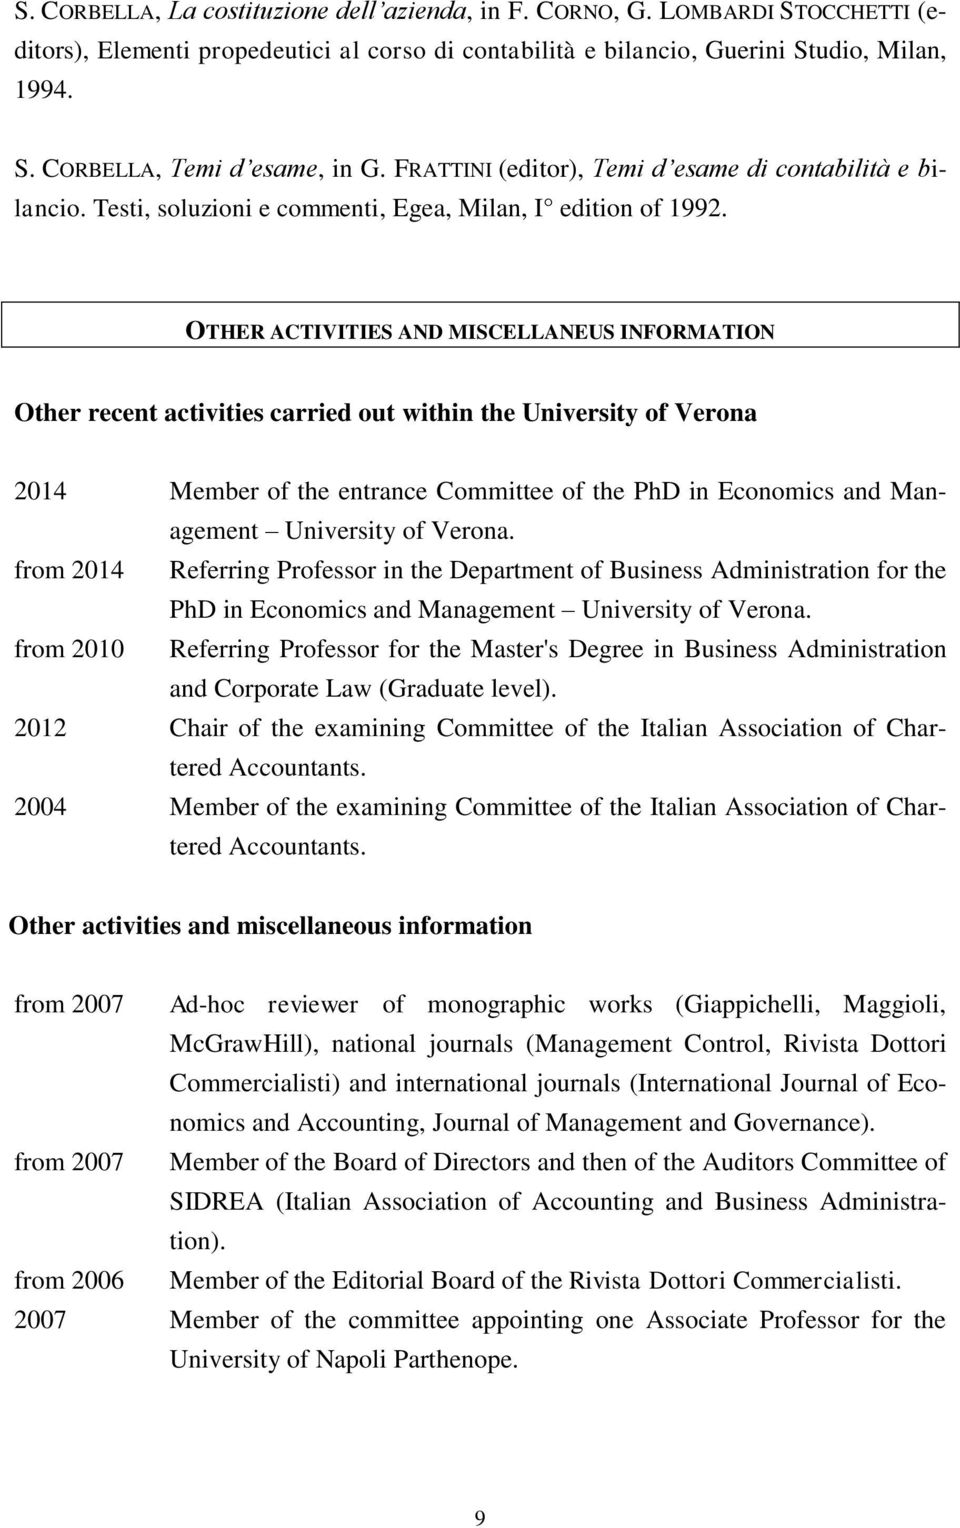 OTHER ACTIVITIES AND MISCELLANEUS INFORMATION Other recent activities carried out within the University of Verona 2014 Member of the entrance Committee of the PhD in Economics and Management